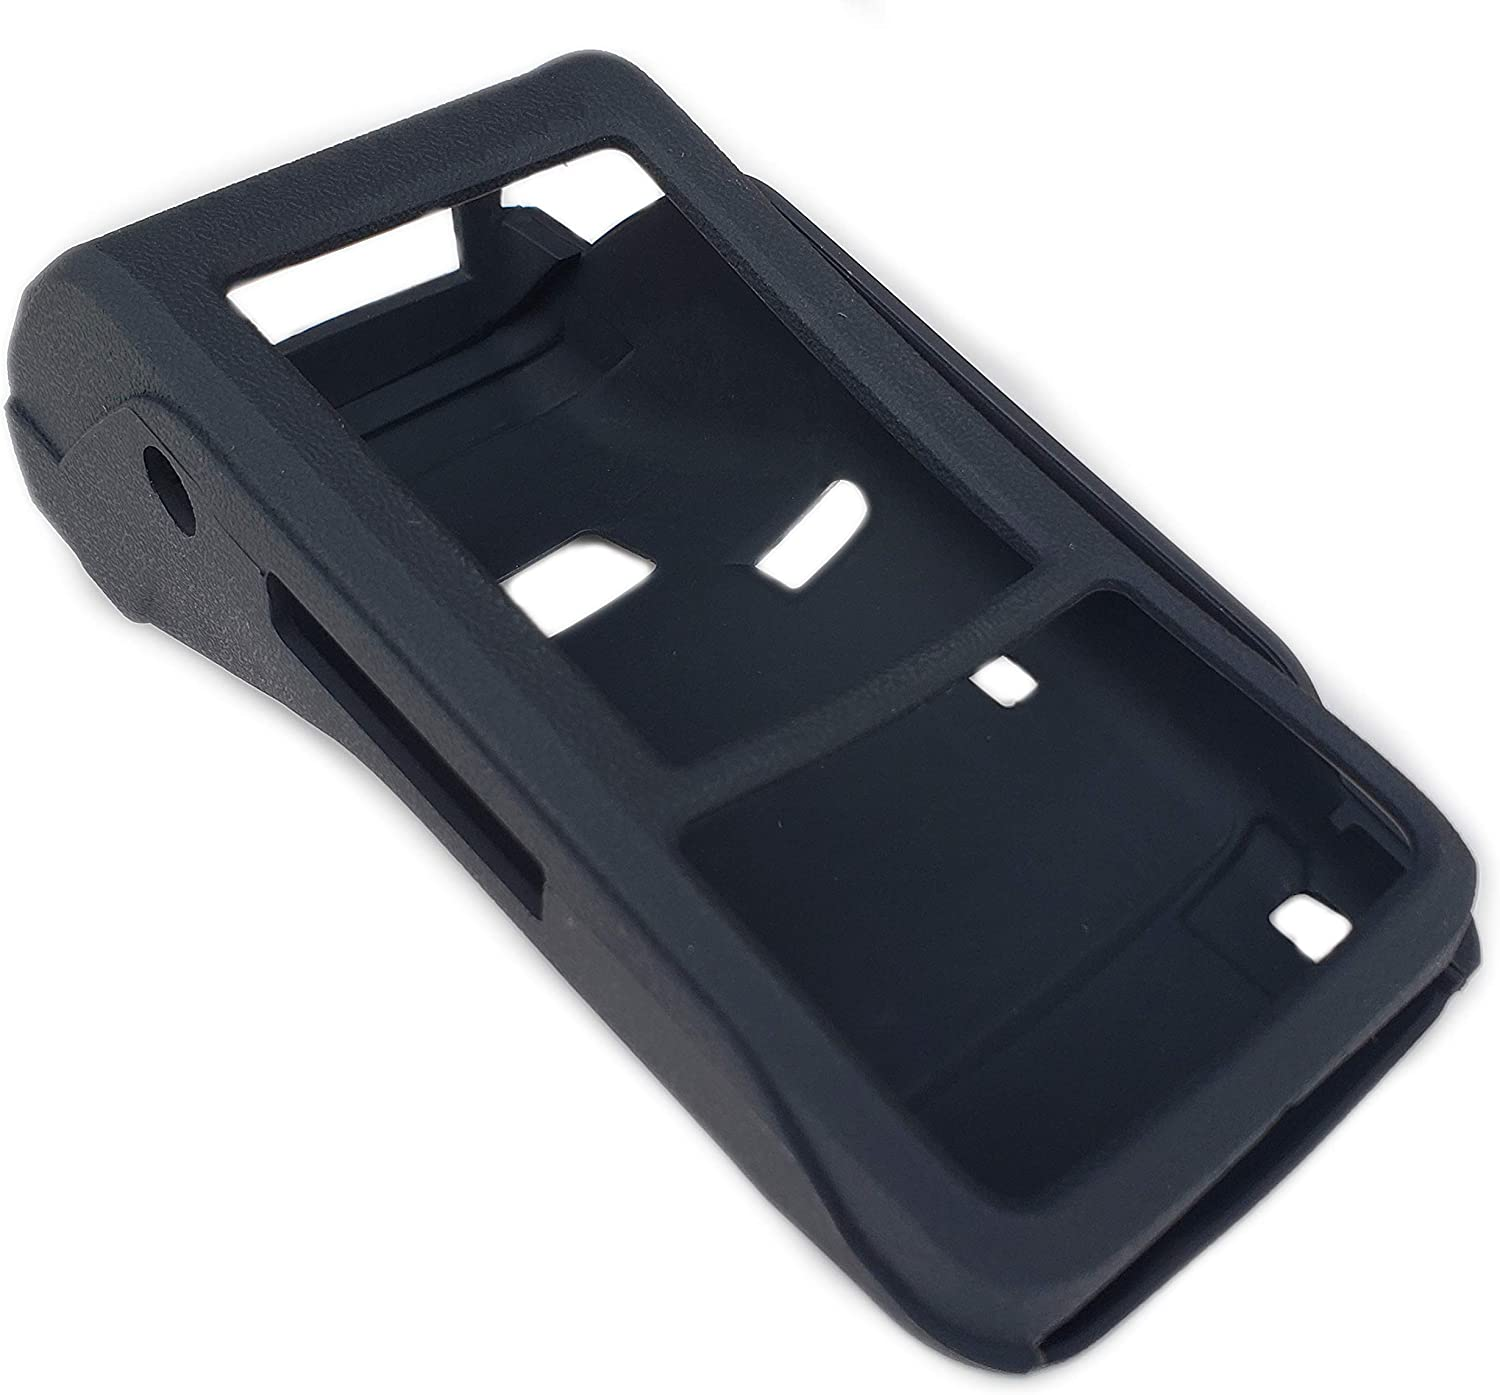 Terminal NOT Included Silicone Protective Cover for Ingenico Move 5000 by NATIONAL/™